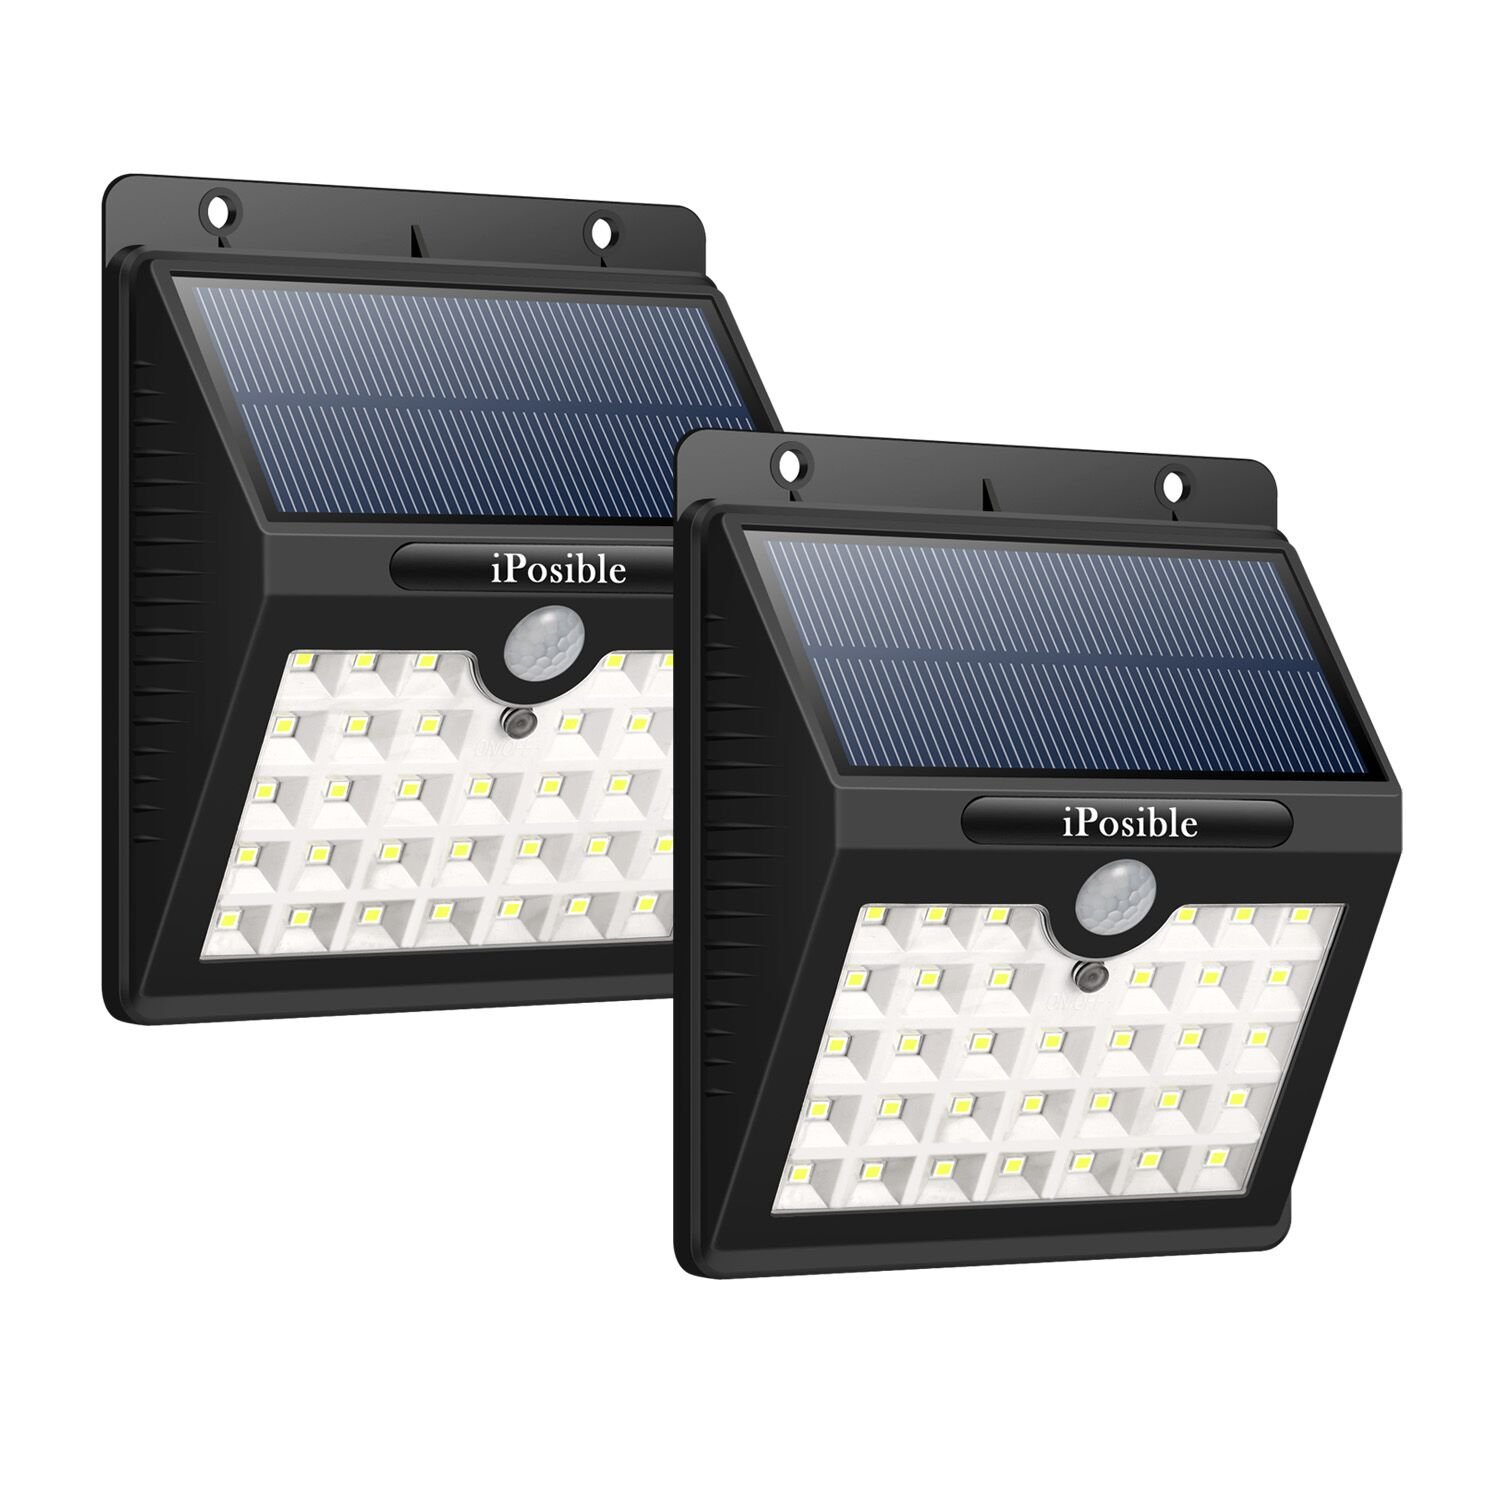 Solar Security Lights,iPosible [2 Pack] 33 Led Motion Sensor Lights Solar Powered Lights Waterproof with 3 Intelligient Modes Outdoor Wireless Wall Lights Outside lighting for Patio Fence Yard Garden